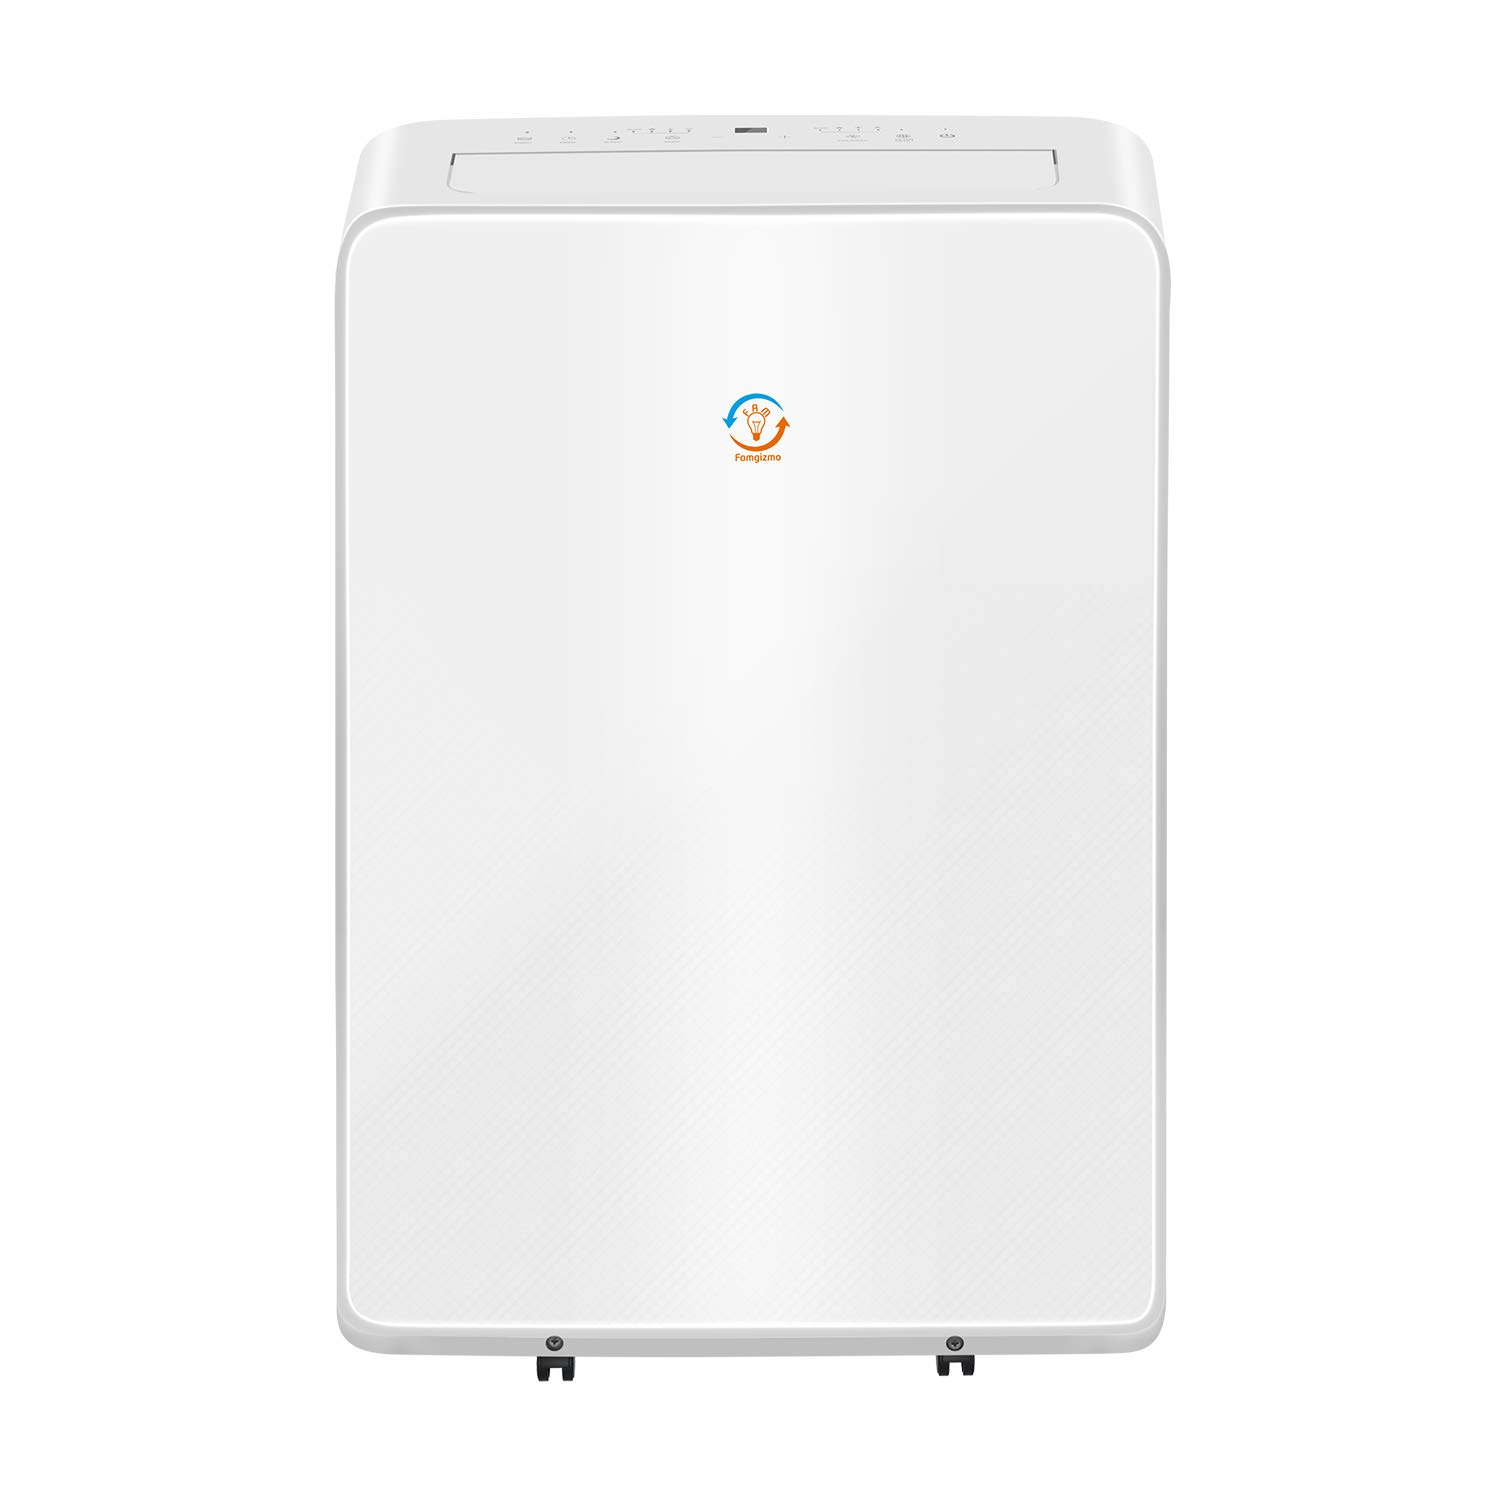 MODERN LIFE 4 in 1 Portable Air Conditioner Uint with Window Seal Kit - Air Cooler, Dehumidifier, Fan & Sleeping Mode,Remote Control,LED Panel Display, 3 Fan Speed & 24H Programmable Timer - 12000Btu